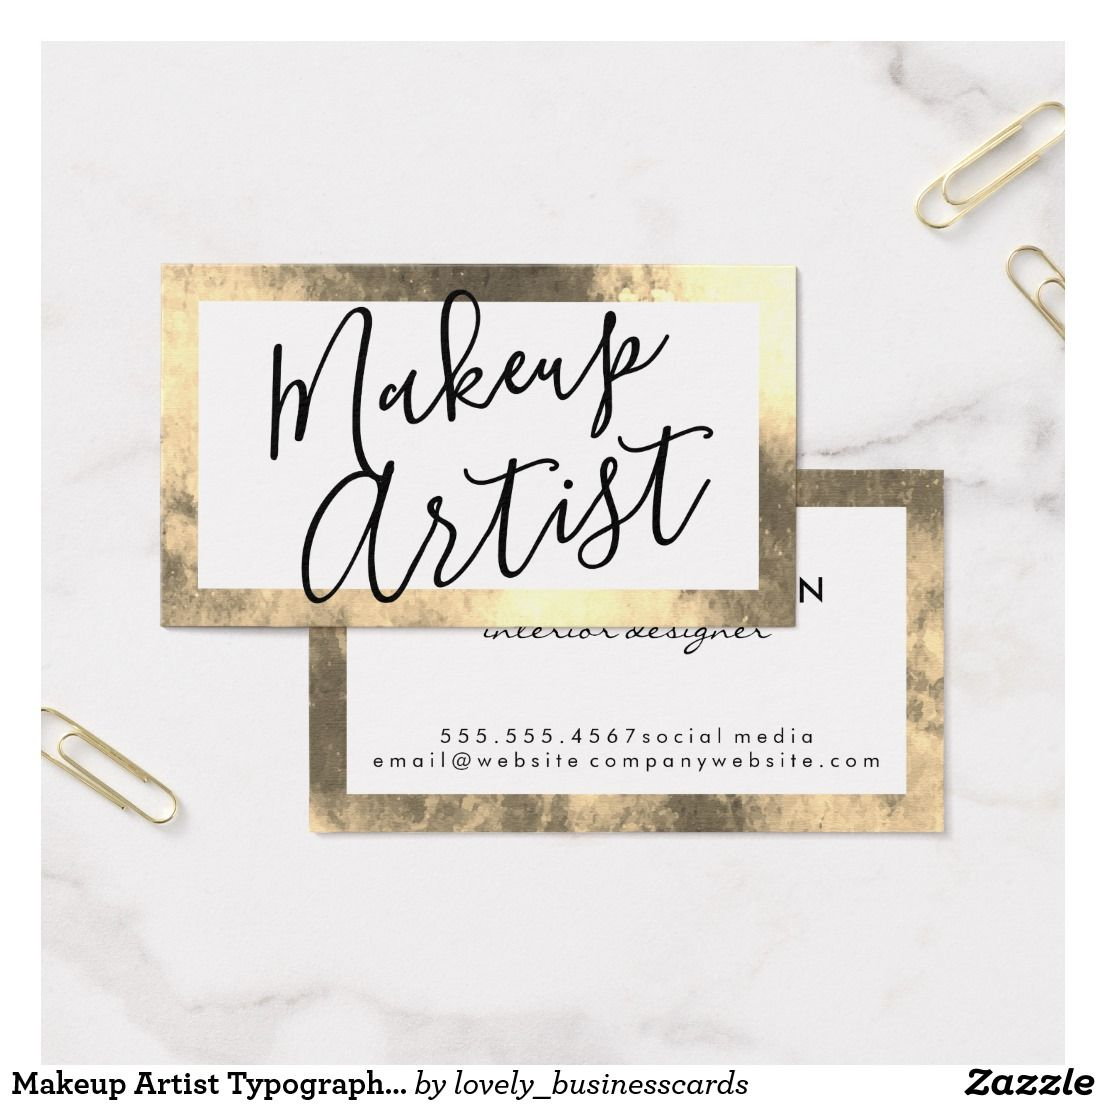 Makeup artist typography gold lux business card business cards makeup artist typography gold lux business card colourmoves